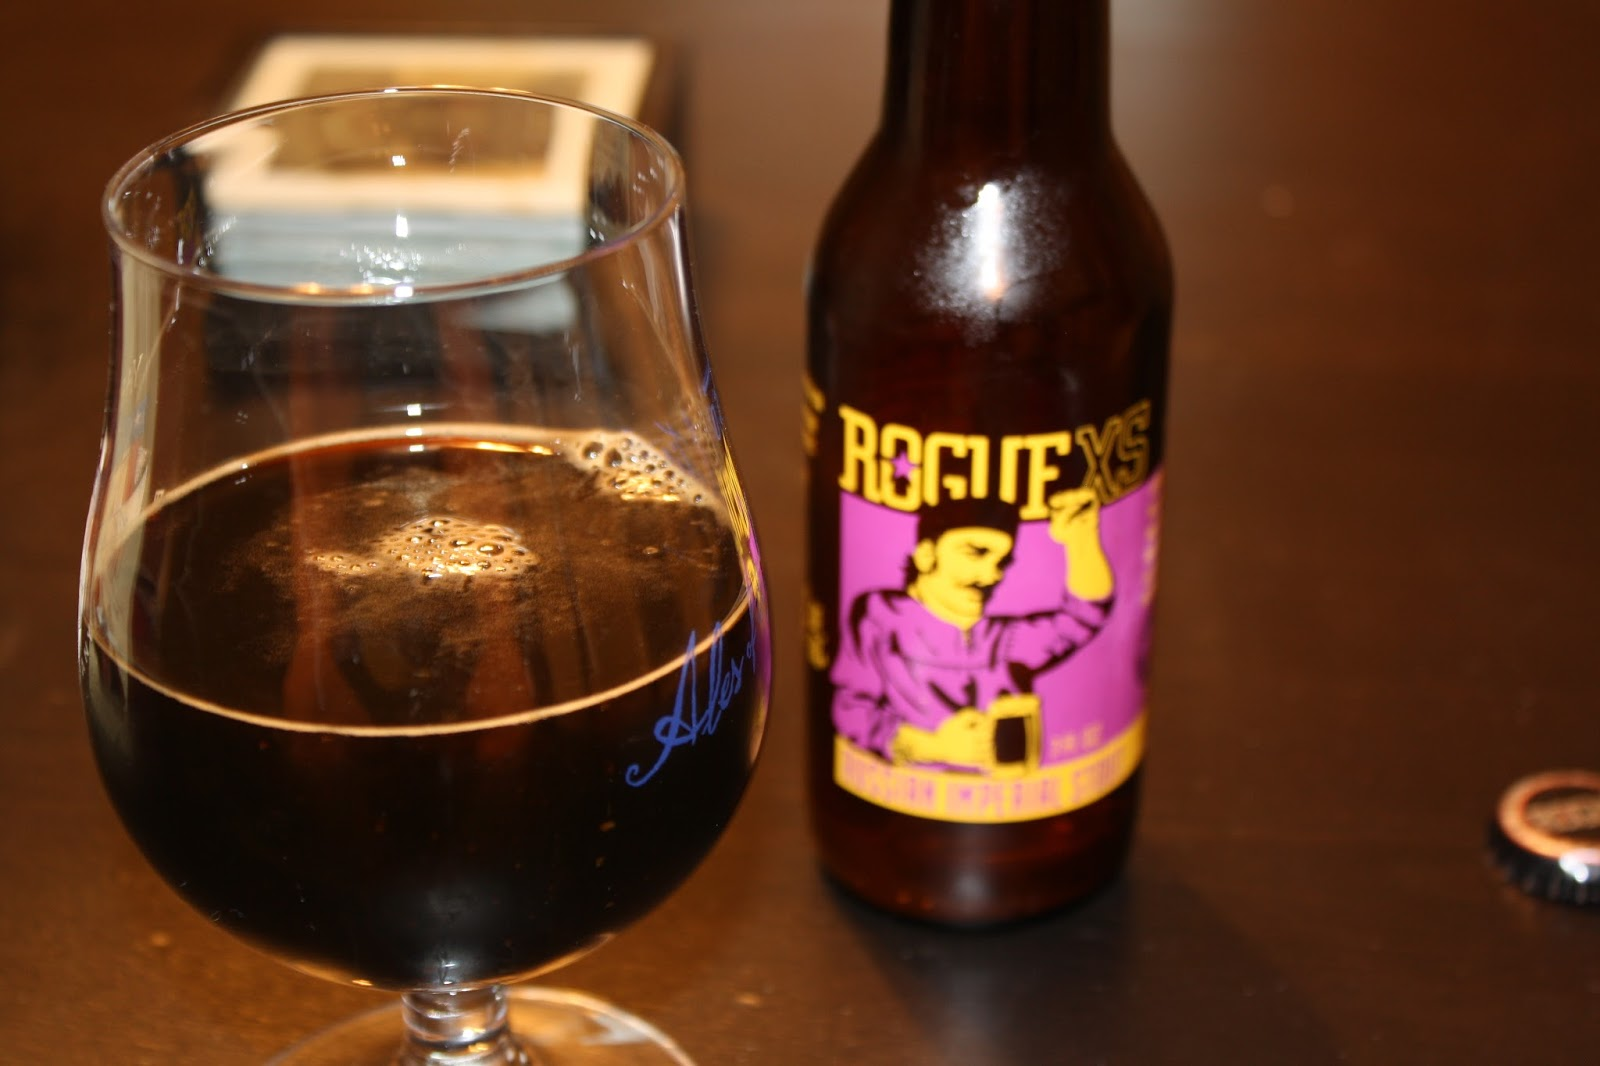 Rogue Brewery, XS Russian Imperial Stout, 2009, Oregon, Craft Beer